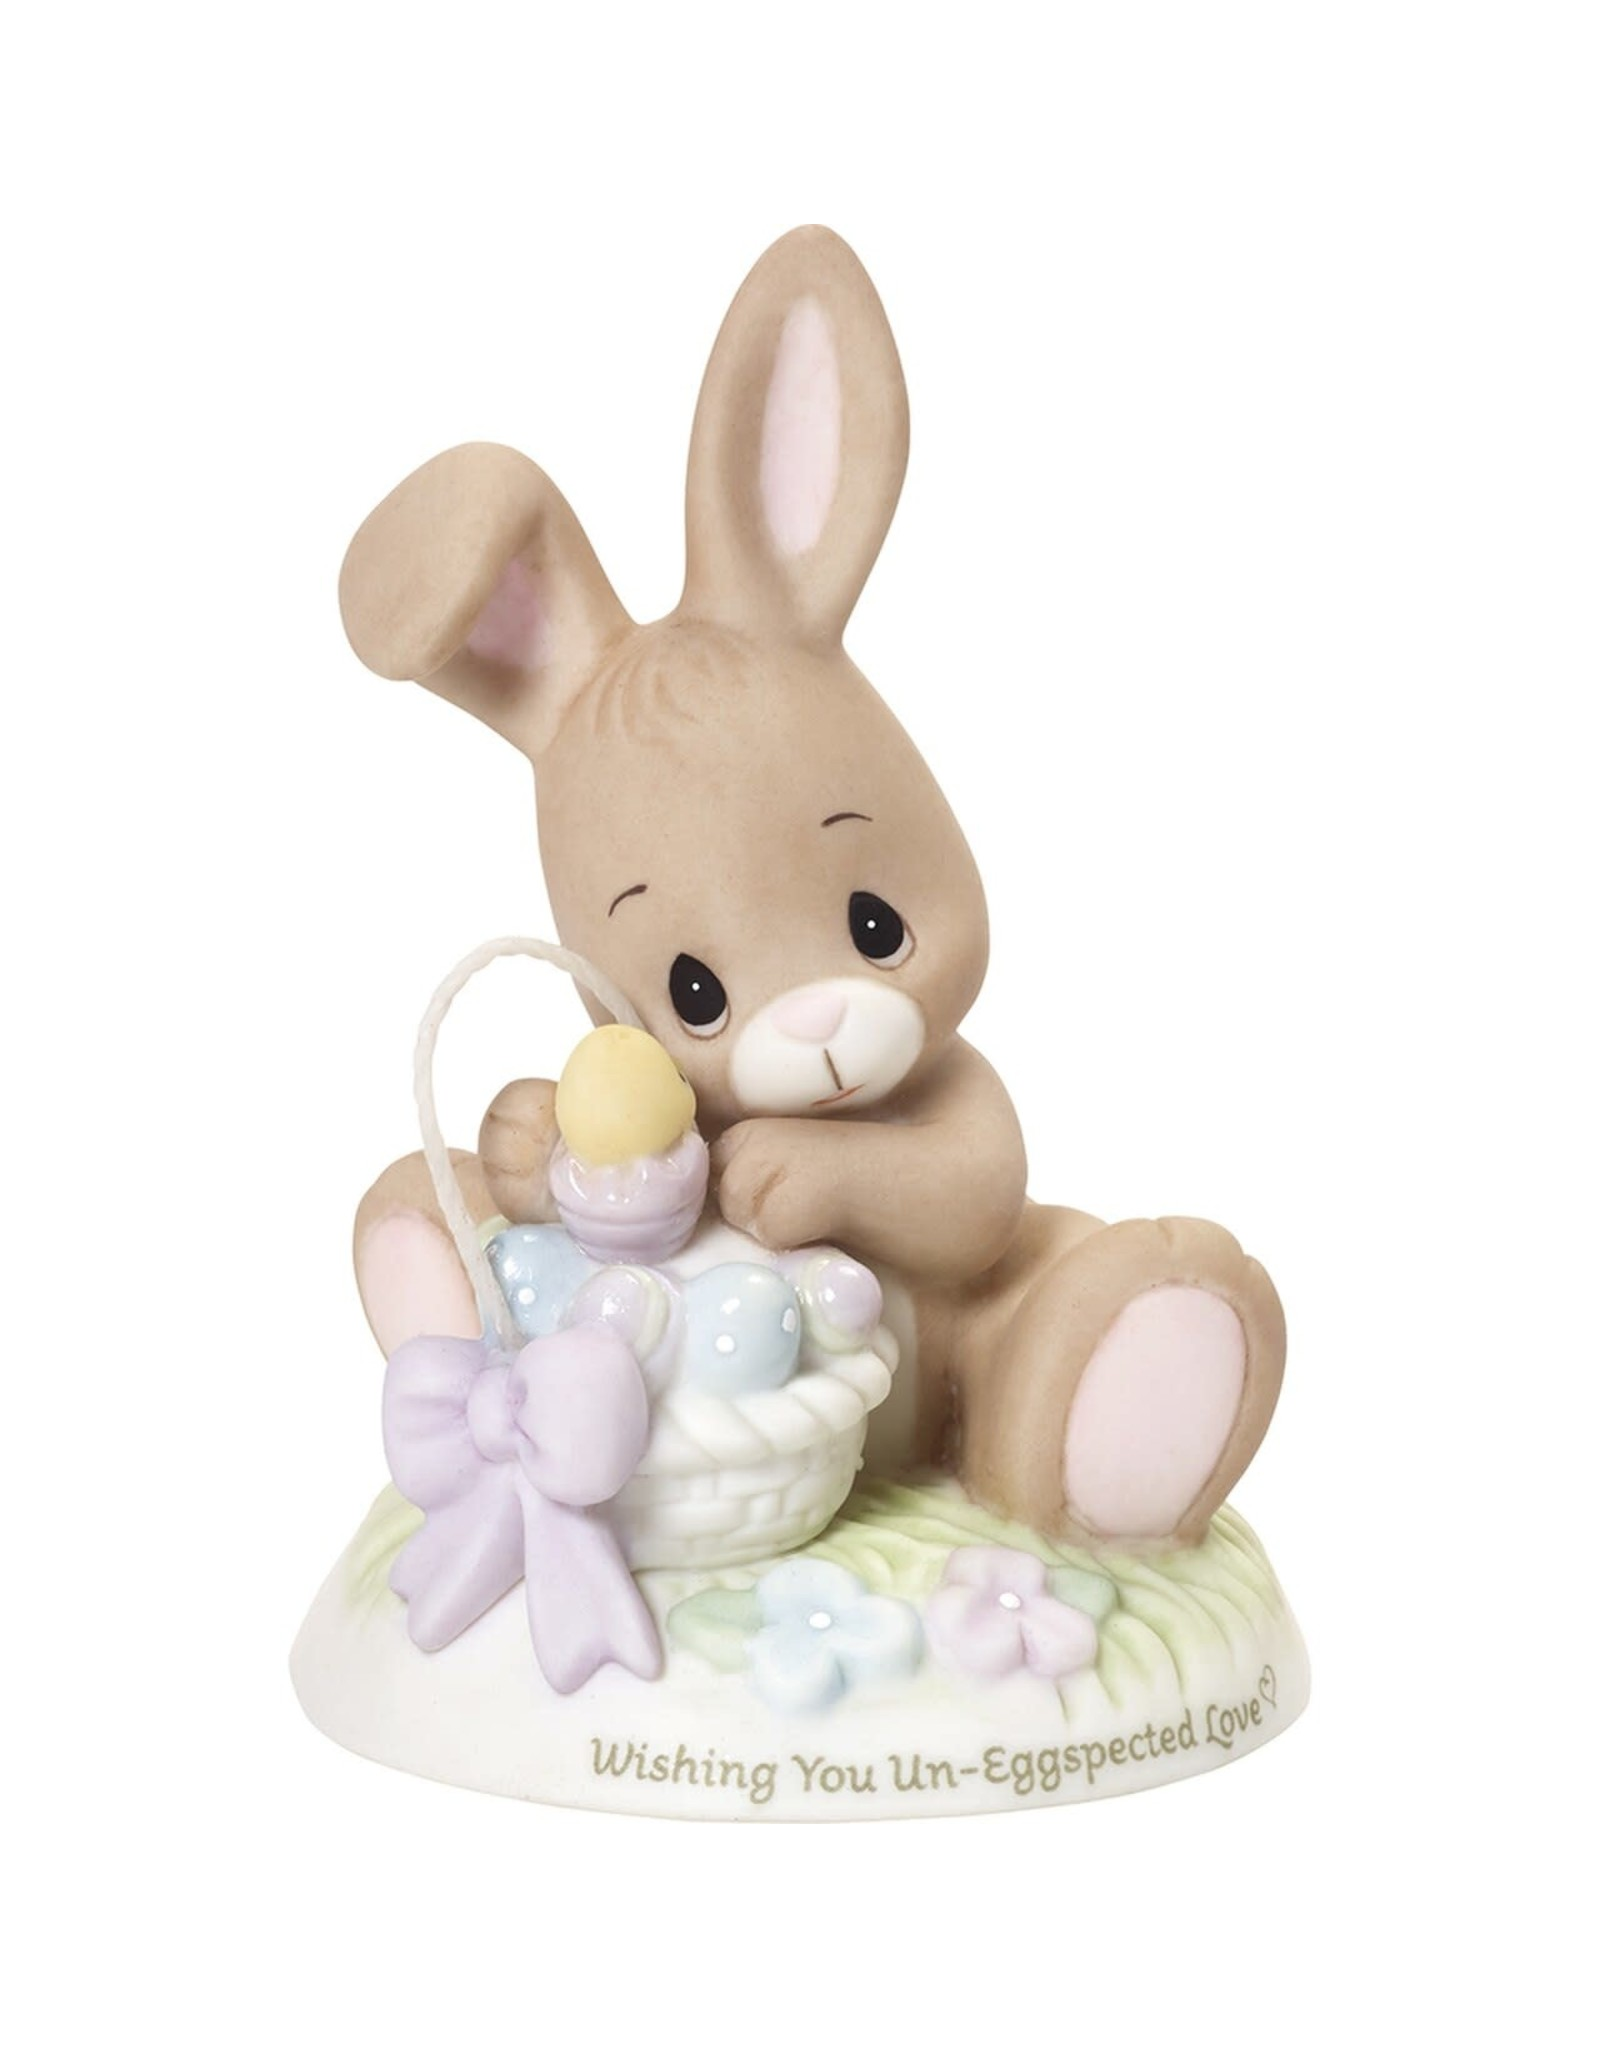 Precious Moments Bunny with Basket Wishing You Un-Eggspected Love Exclusive Figurine